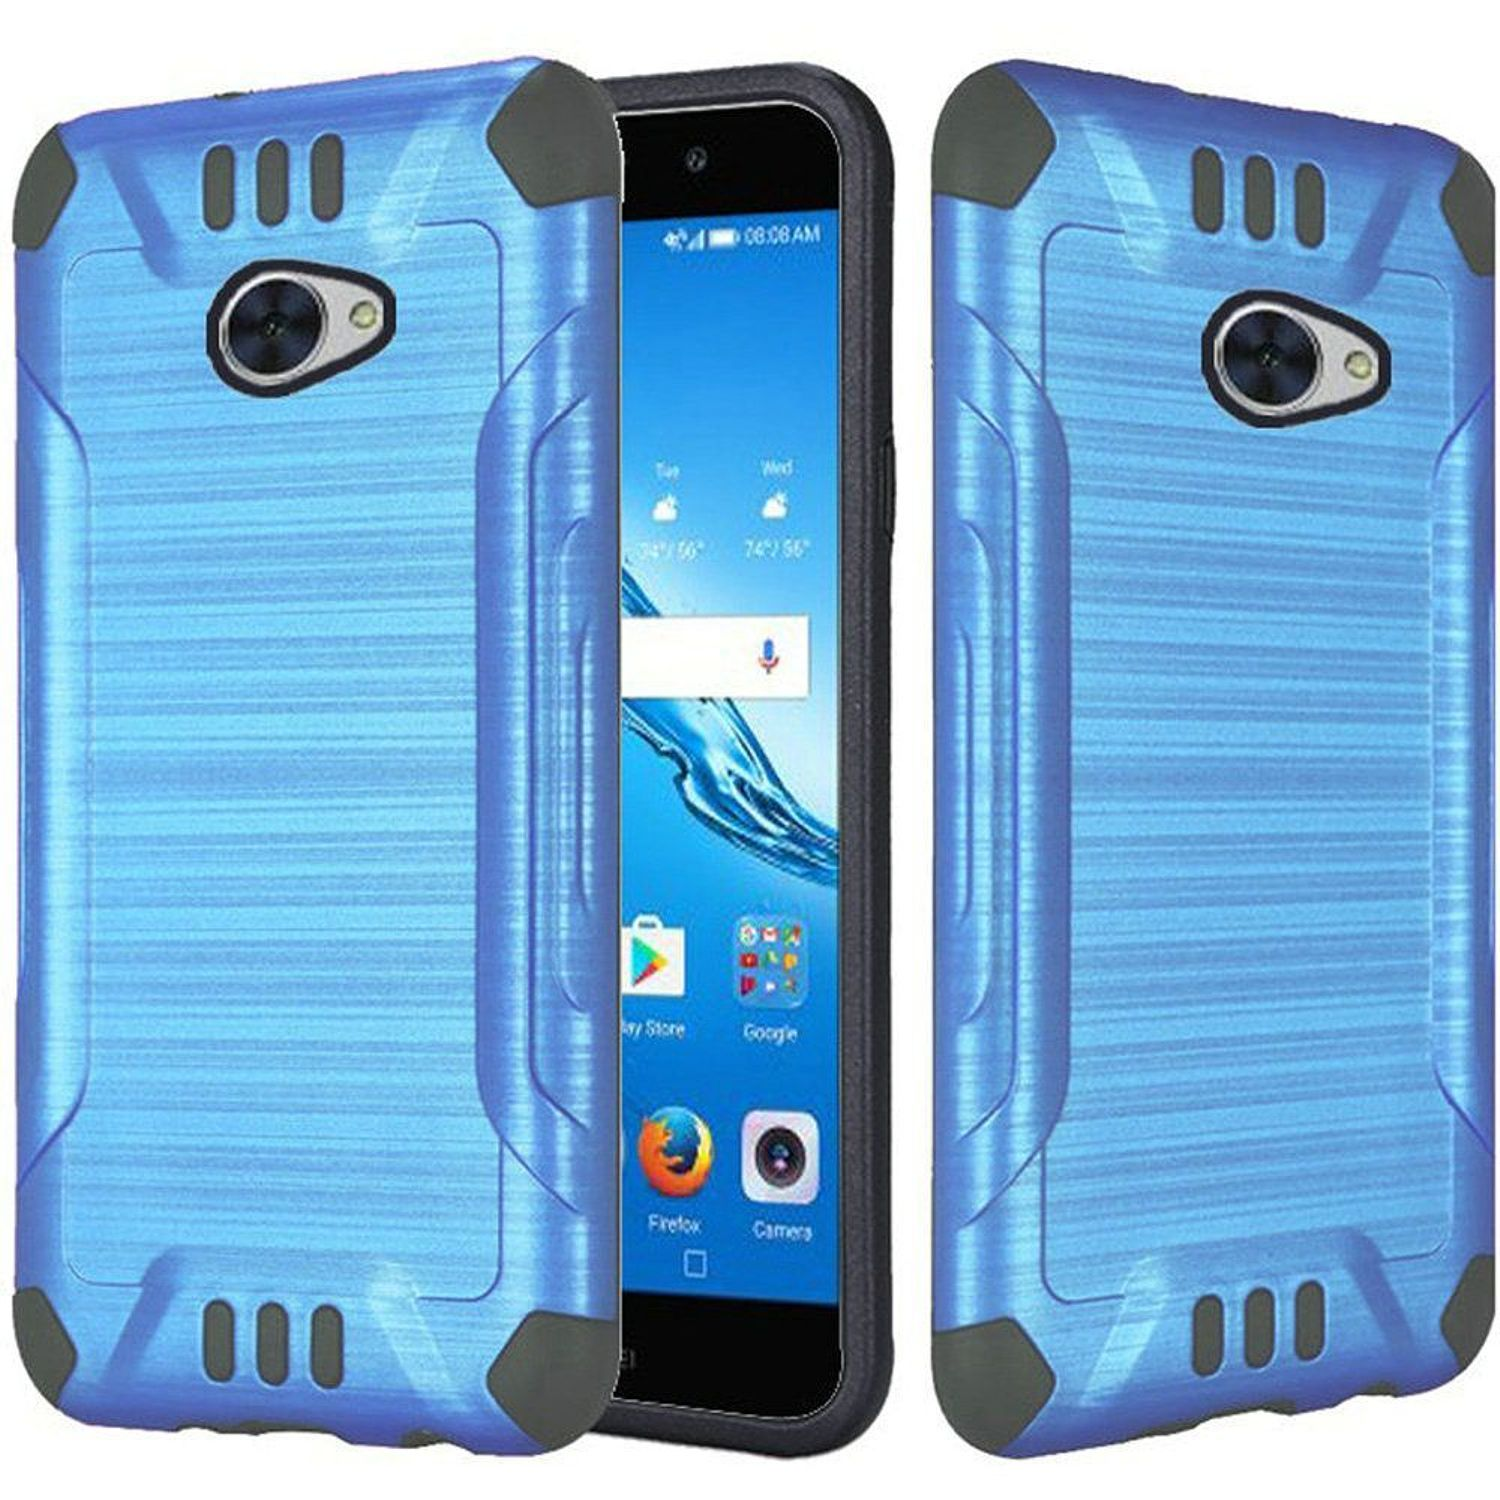 Huawei Ascend XT2 Case, by HR Wireless Slim Armor Dual Layer [Shock Absorbing] Hybrid Brushed Hard Plastic/Soft TPU Rubber Case Cover For Huawei Ascend XT2, Blue/Black